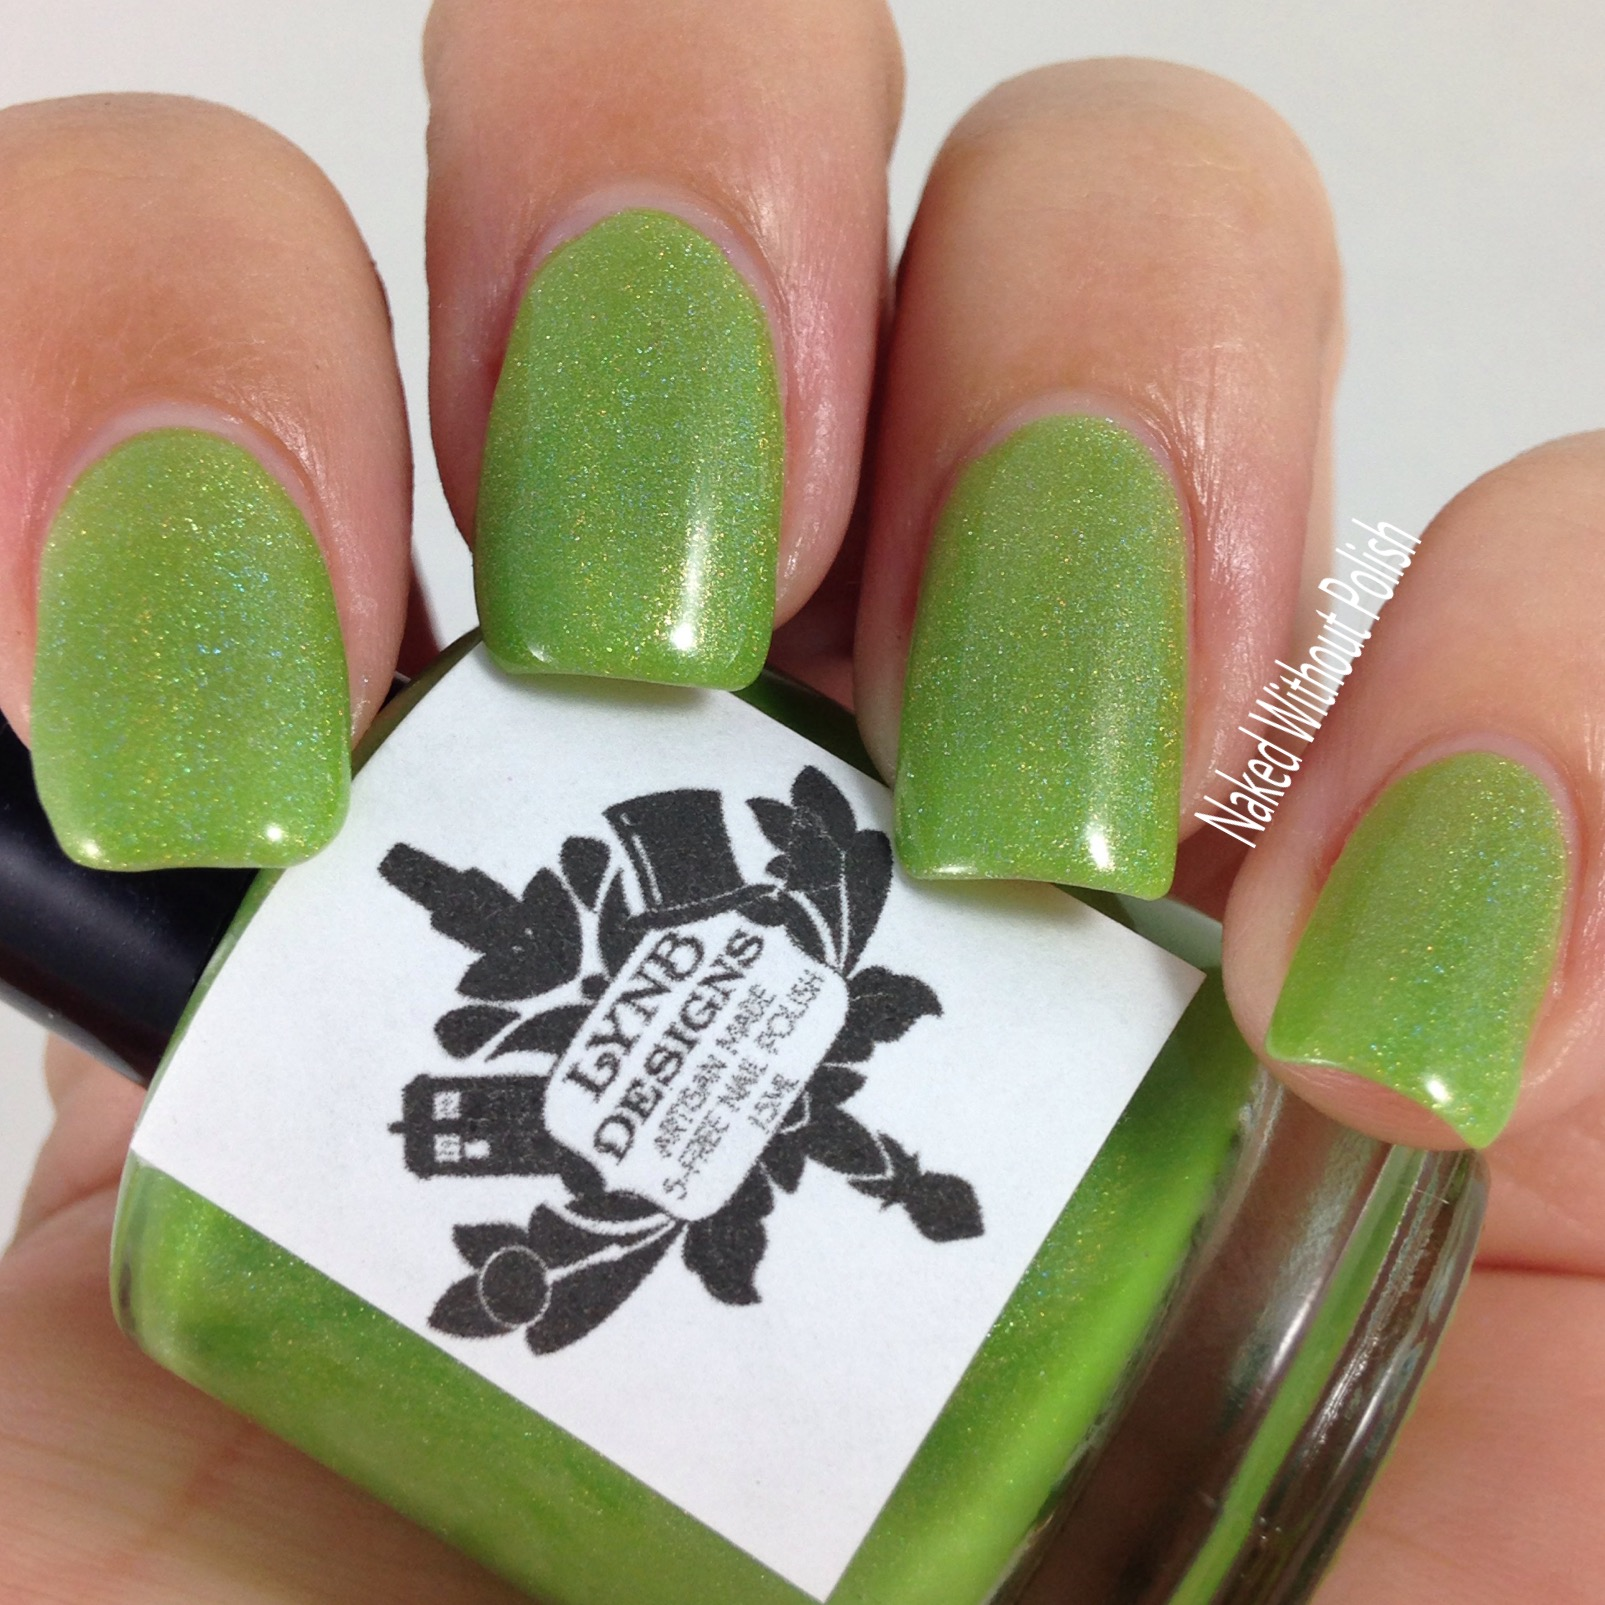 LynBDesigns-Lime-and-Lime-Again-6